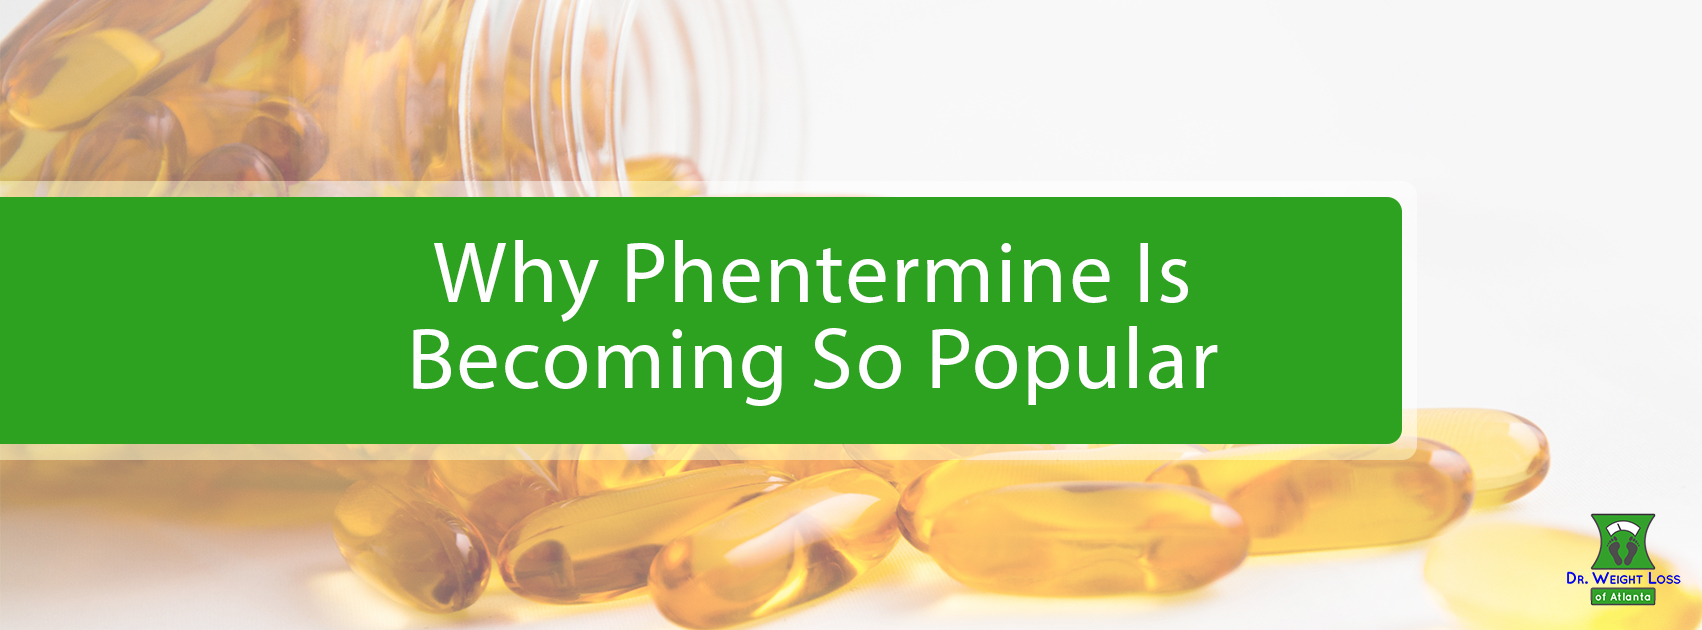 Why Is Phentermine So Popular